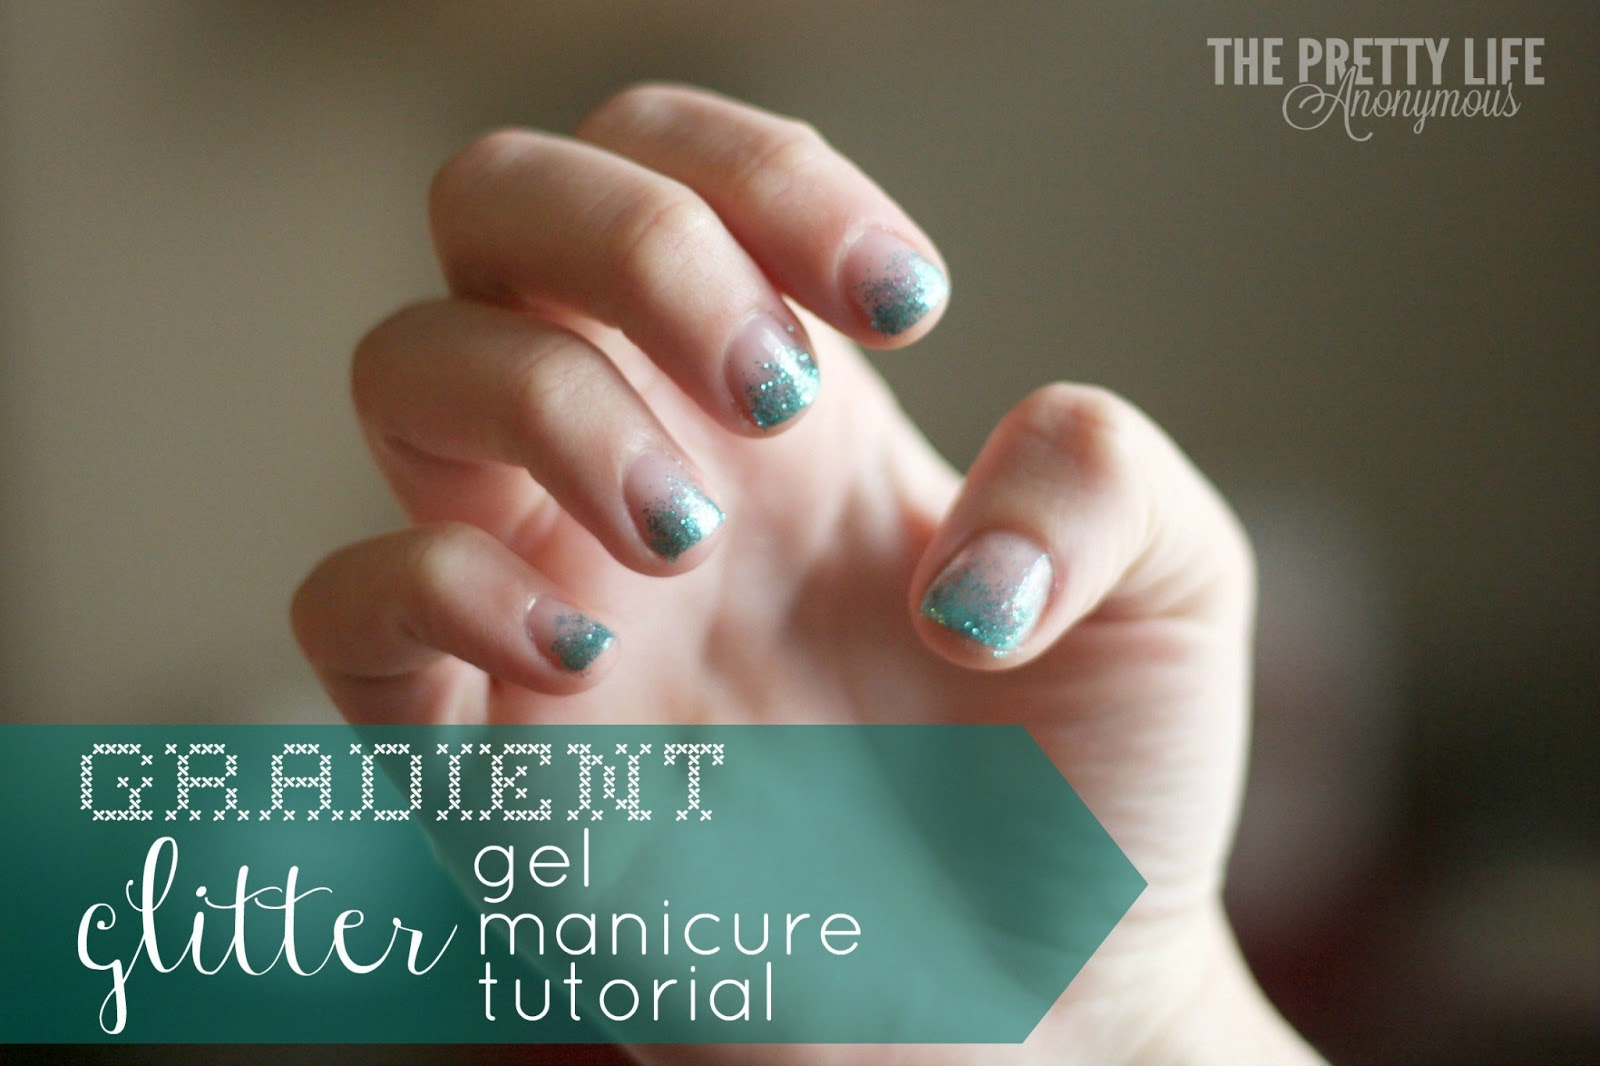 Gradient Glitter Gel Nails Tutorial - The Pretty Life Girls